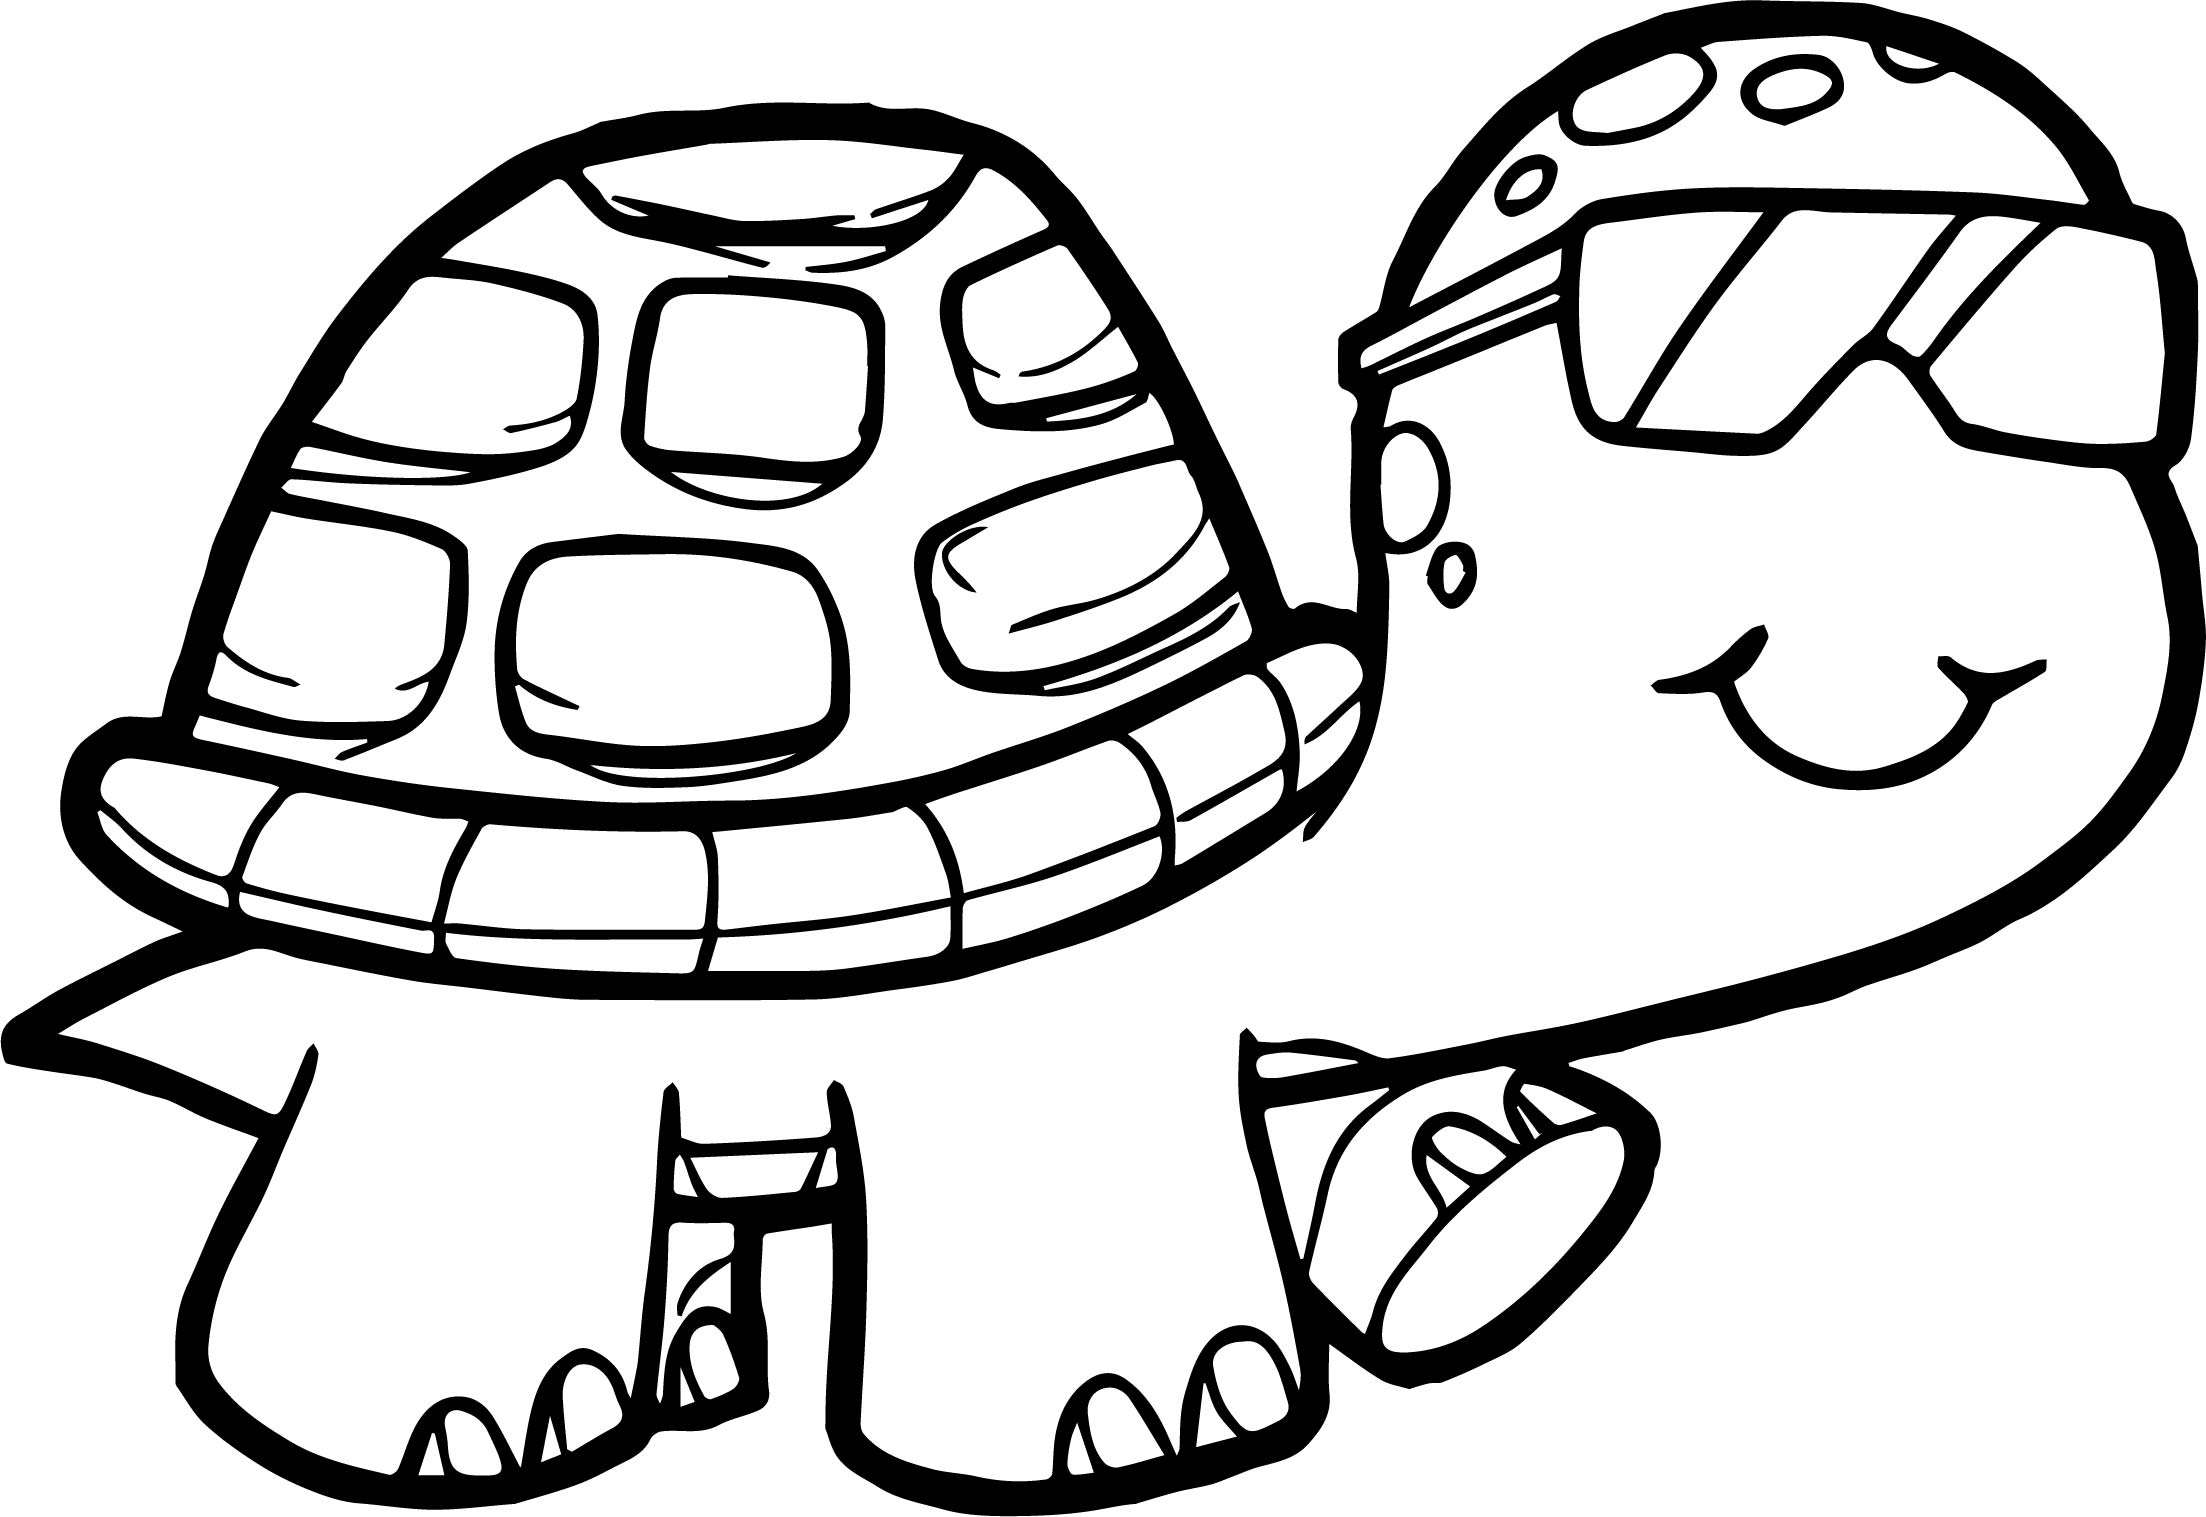 2206x1517 Glasses Tortoise Turtle Coloring Page Wecoloringpage